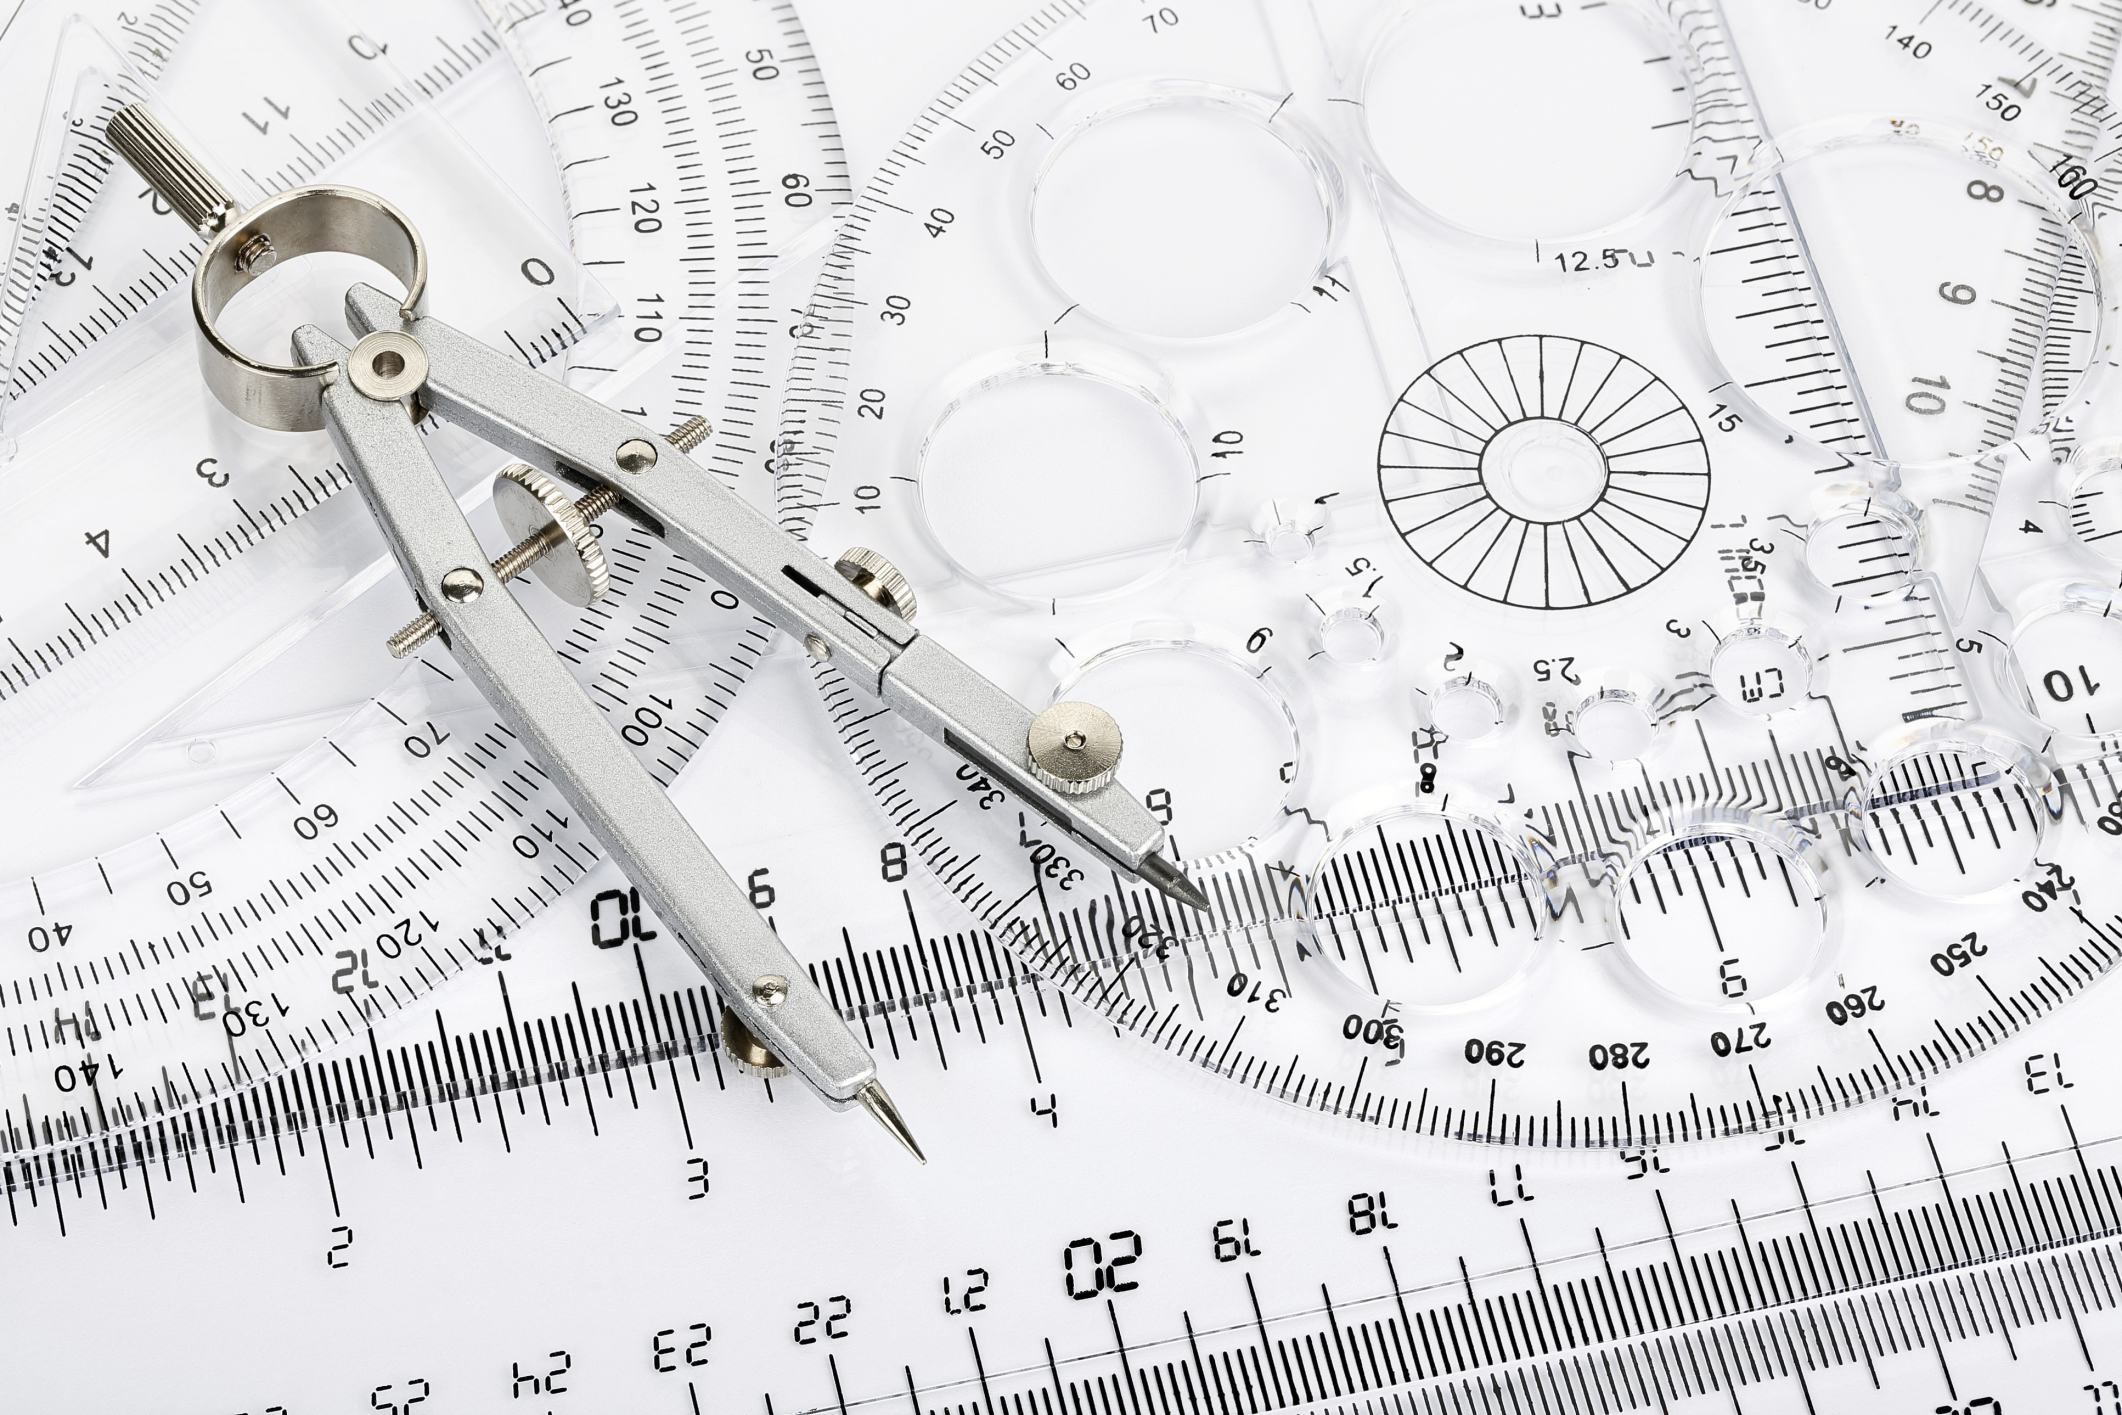 How To Calculate The Radius From The Circumference